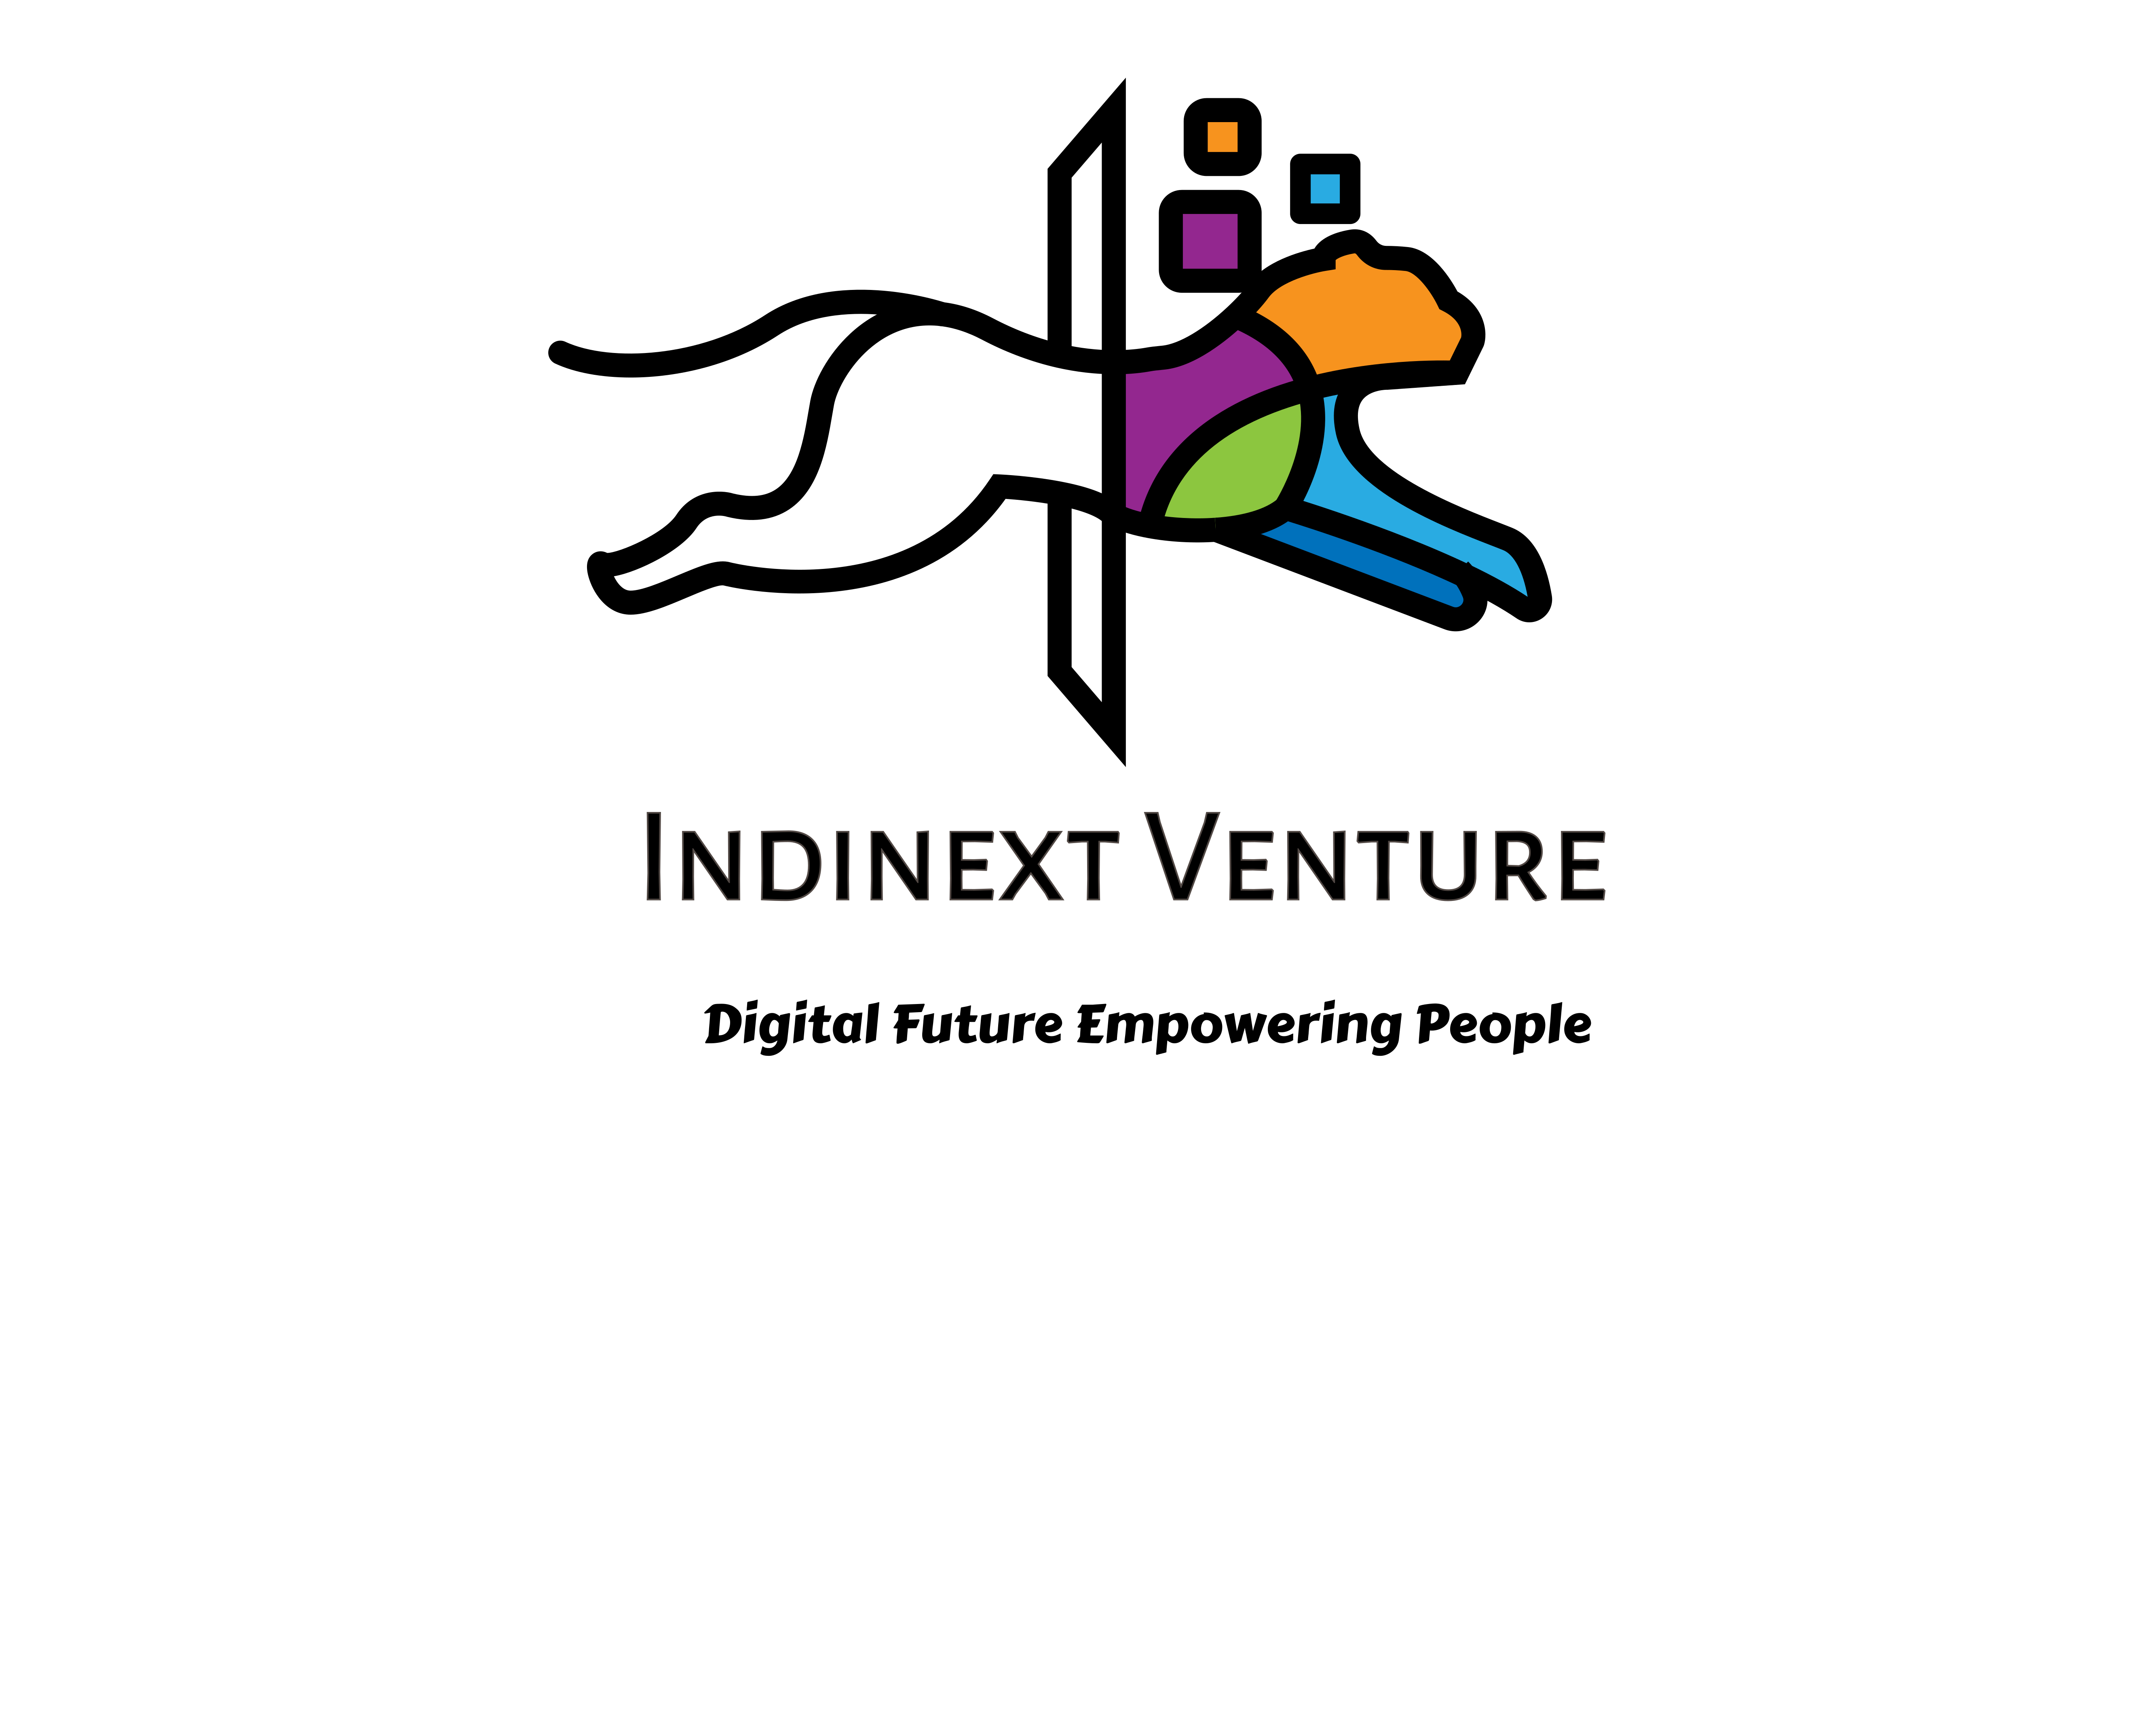 Indinext Venture Set To Launch New AI-Based Global Fashion Multivendor Ecom Site